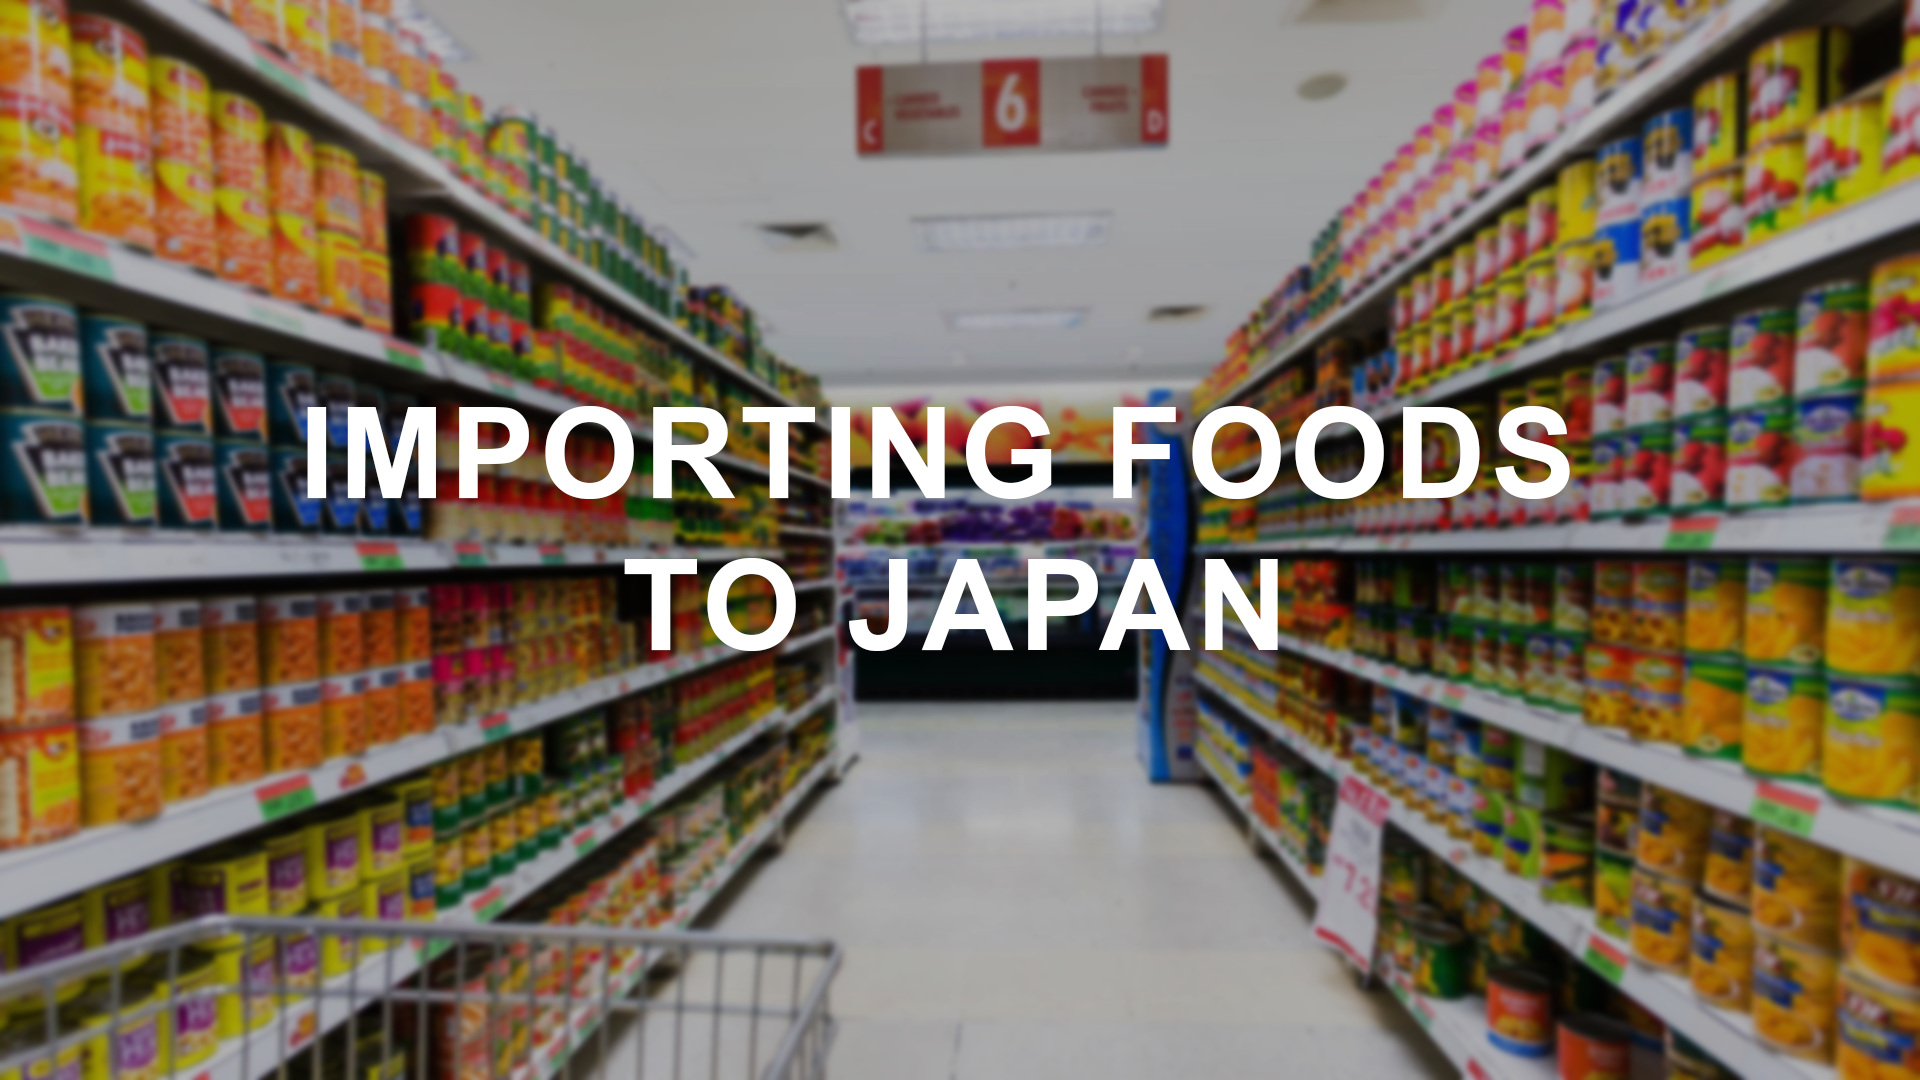 Importing foods to Japan